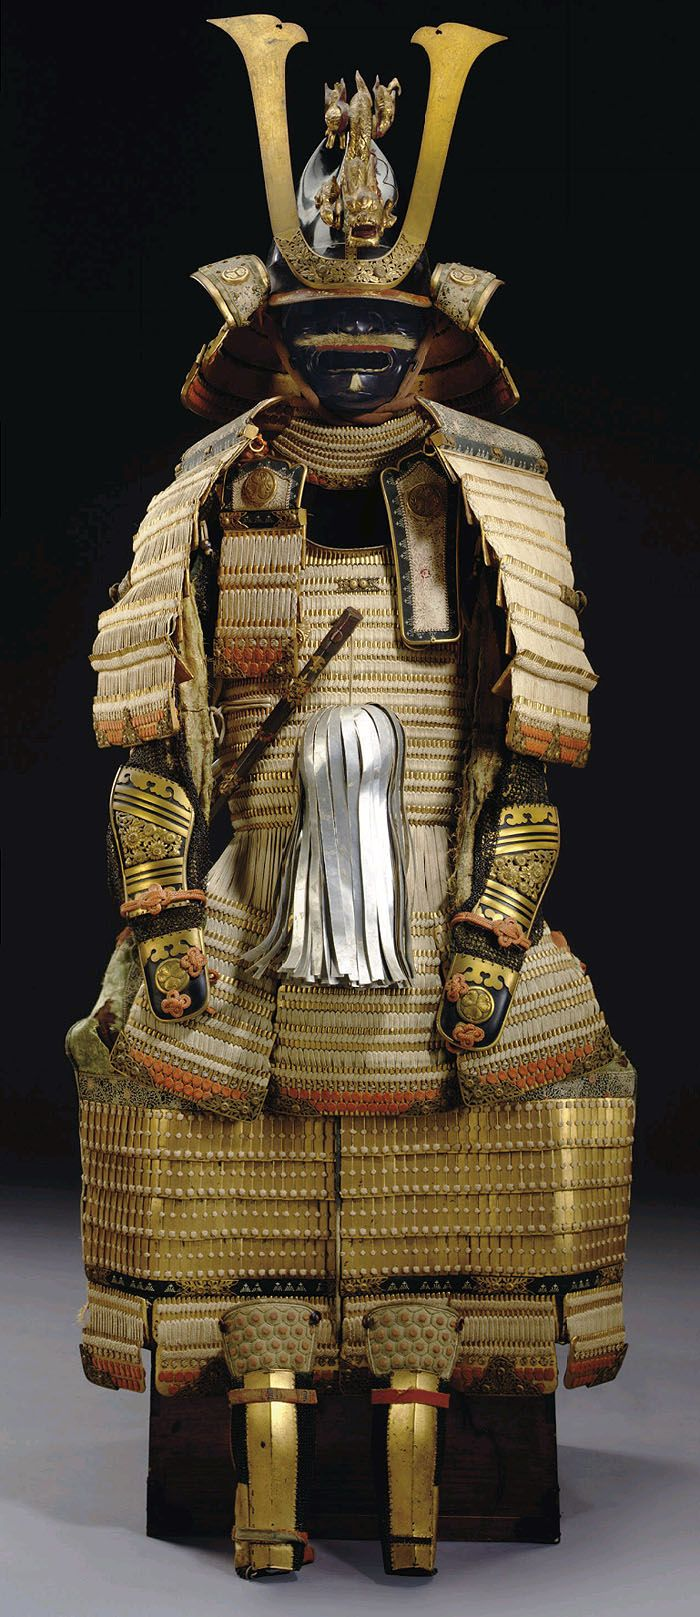 Armor for a Daimyo of the Tokugawa Shogun family. White-laced gold-lacquered nimai-do gusoku. Edo period (18th century) This fine quality armor is in the restoration style initiated by the eighth shogun, Tokugawa Yoshimune (1684-1751), who advocated a return to the samurai virtues of the Kamakura period (1185-1333). The armor is accordingly a hybrid of styles from the Kamakura period, and the tosei gusoku (equipment of the times) dating from the 16th through the 18th century, and persisting…